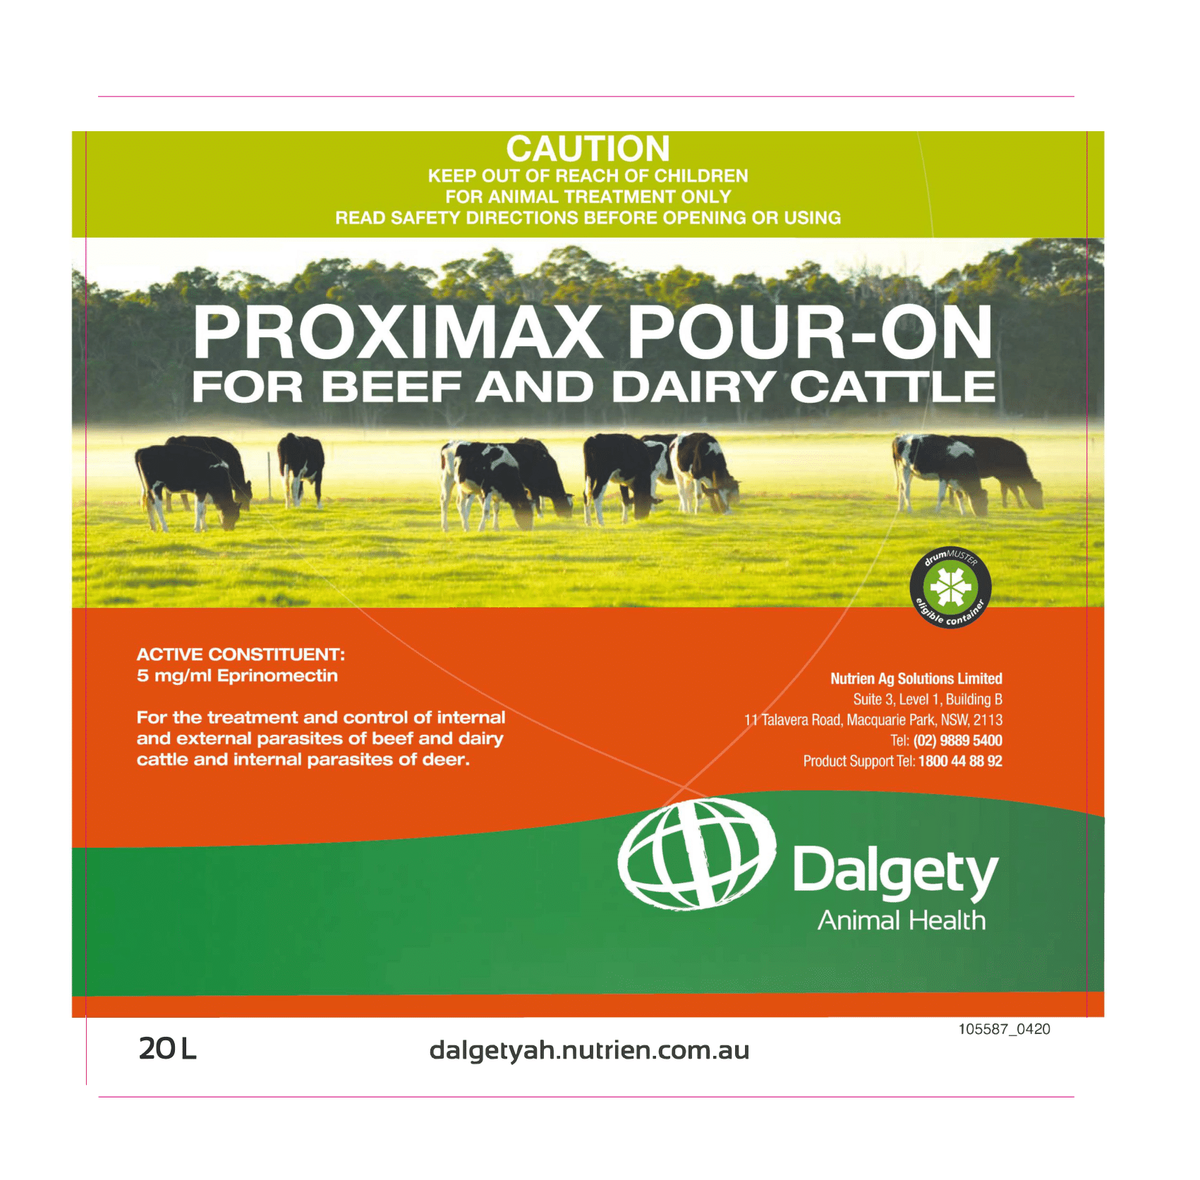 Proxima Pour-On For Beef And Dairy Cattle